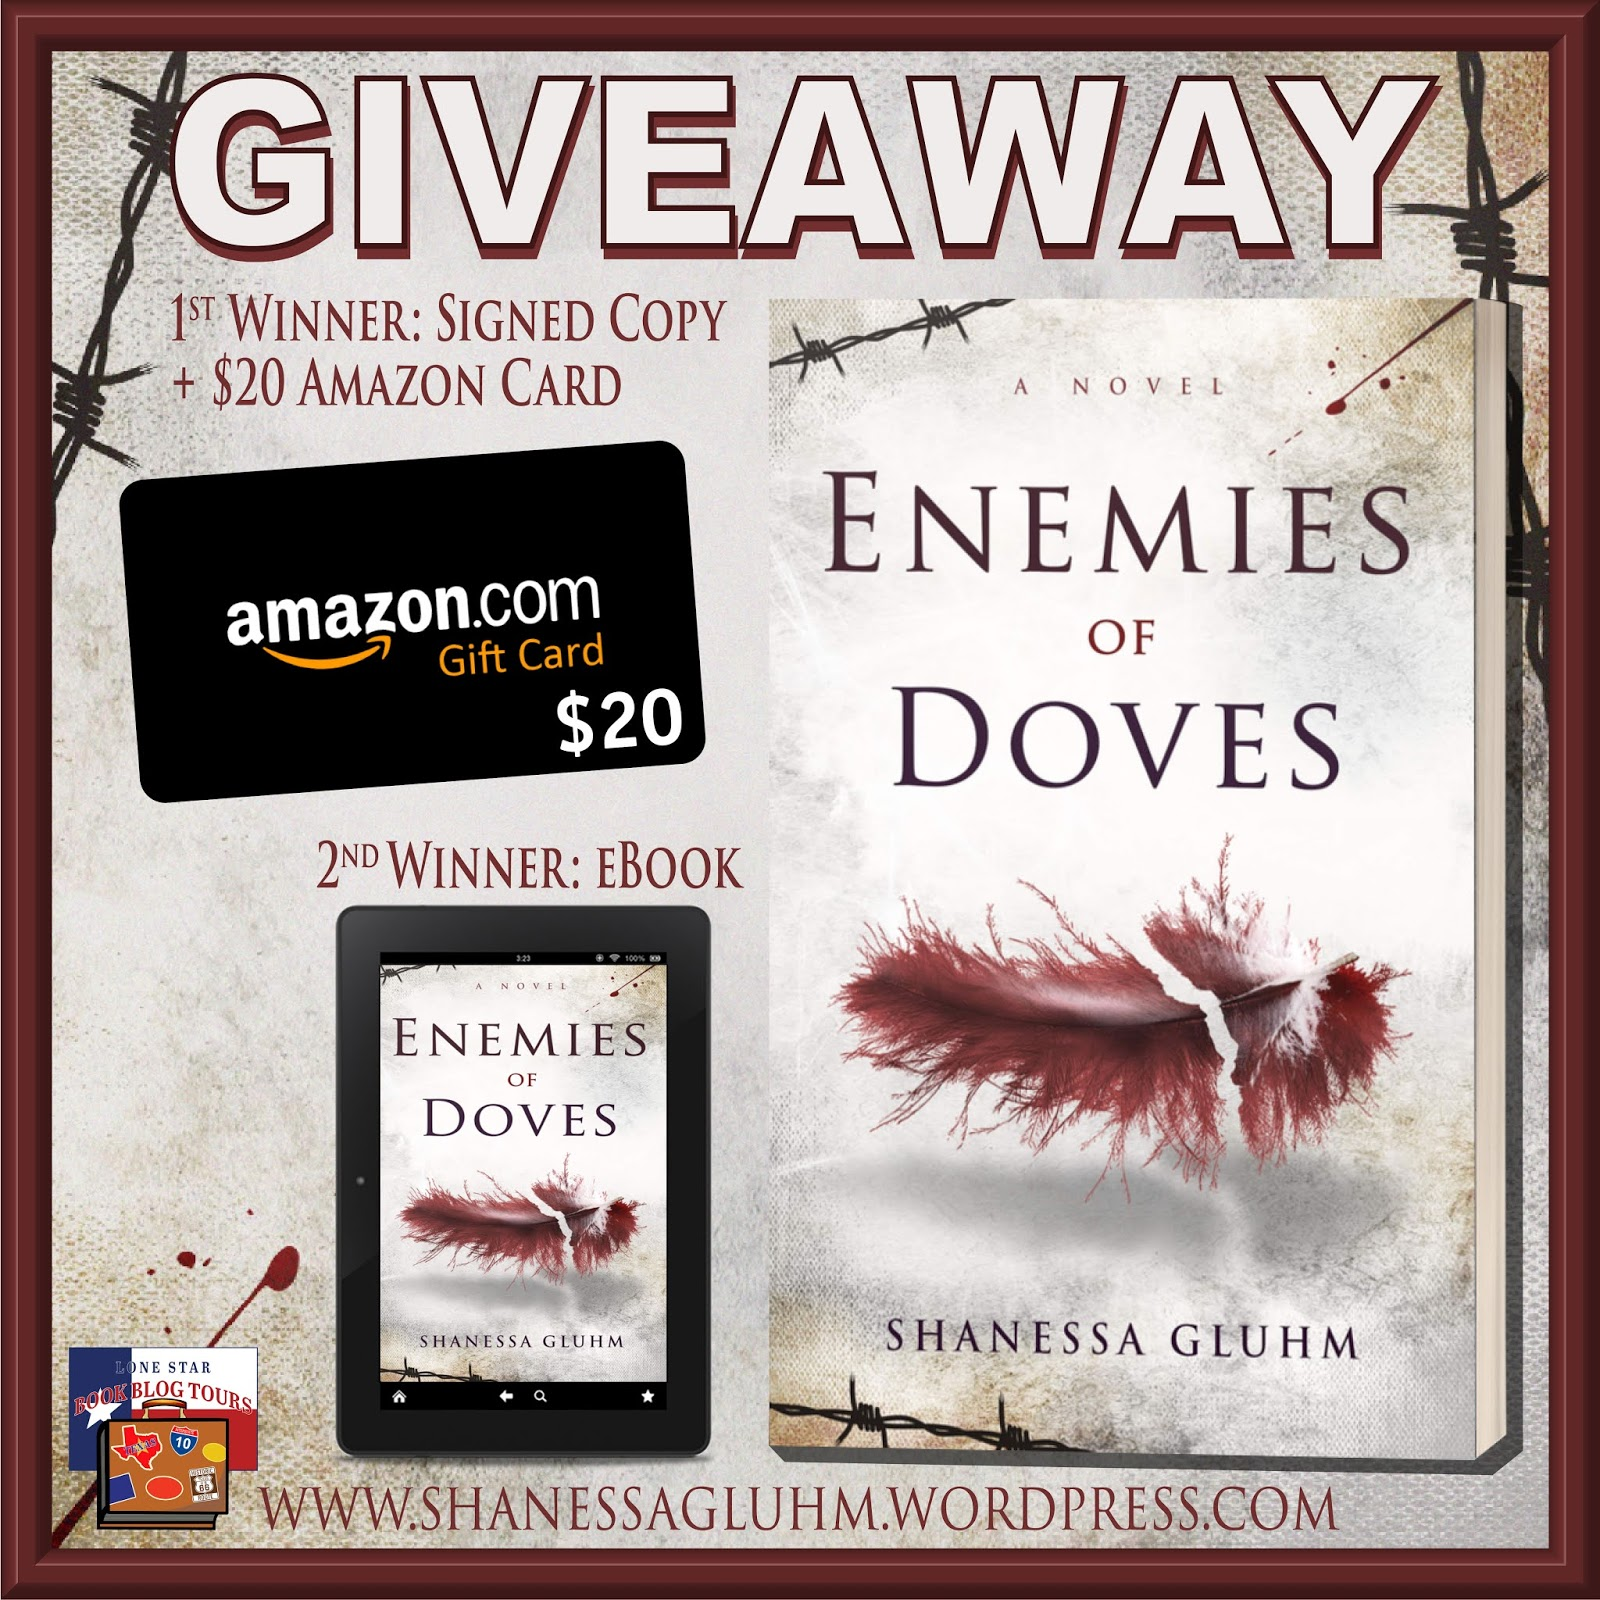 Enemies of Doves tour giveaway graphic. Prizes to be awarded precede this image in the post text.